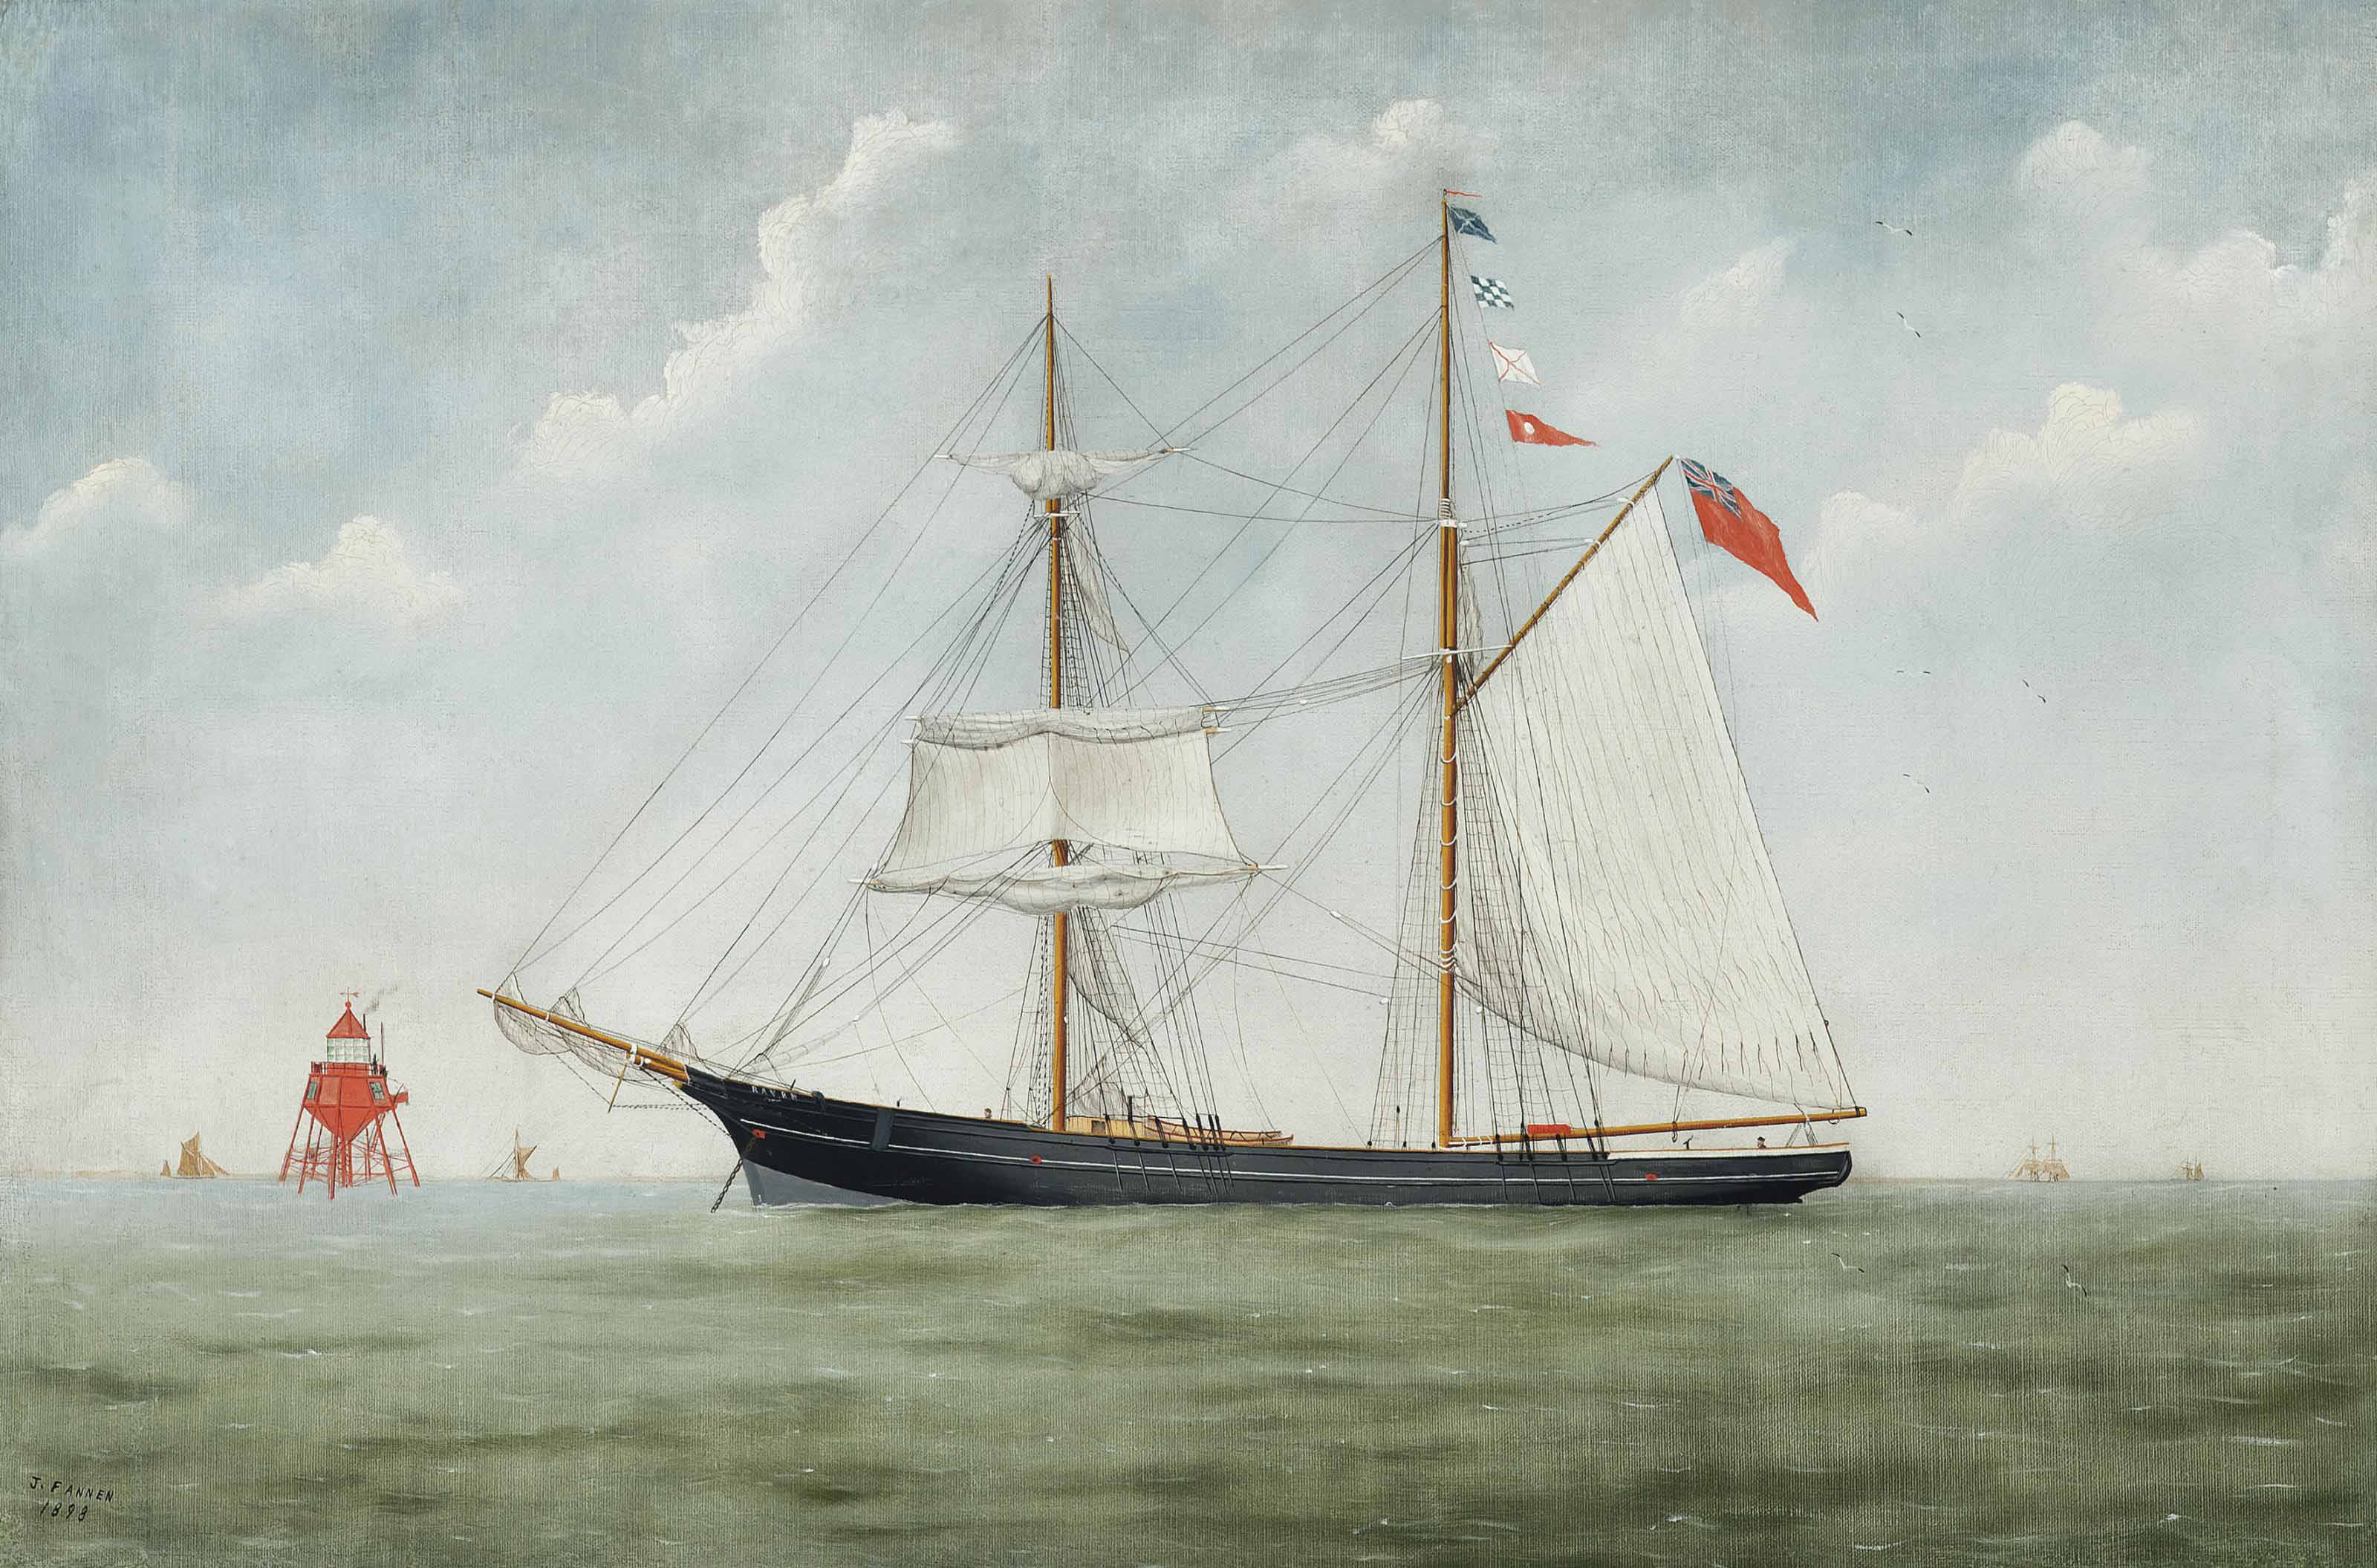 The British topsail schooner Raven anchored off a red lighthouse